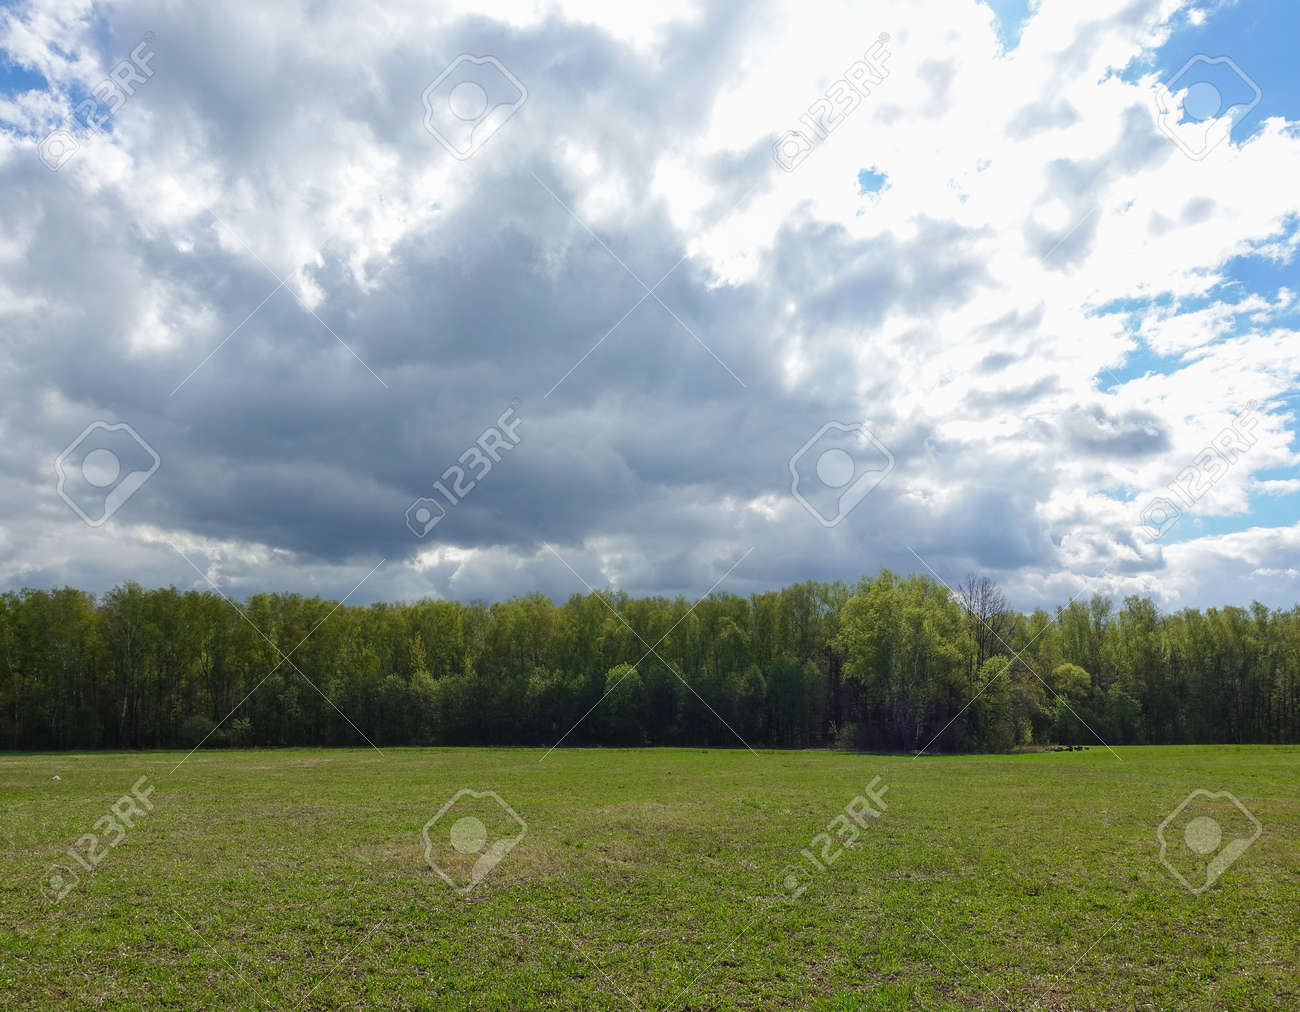 Landscape cloudy sky and green field. Russia. - 123186776